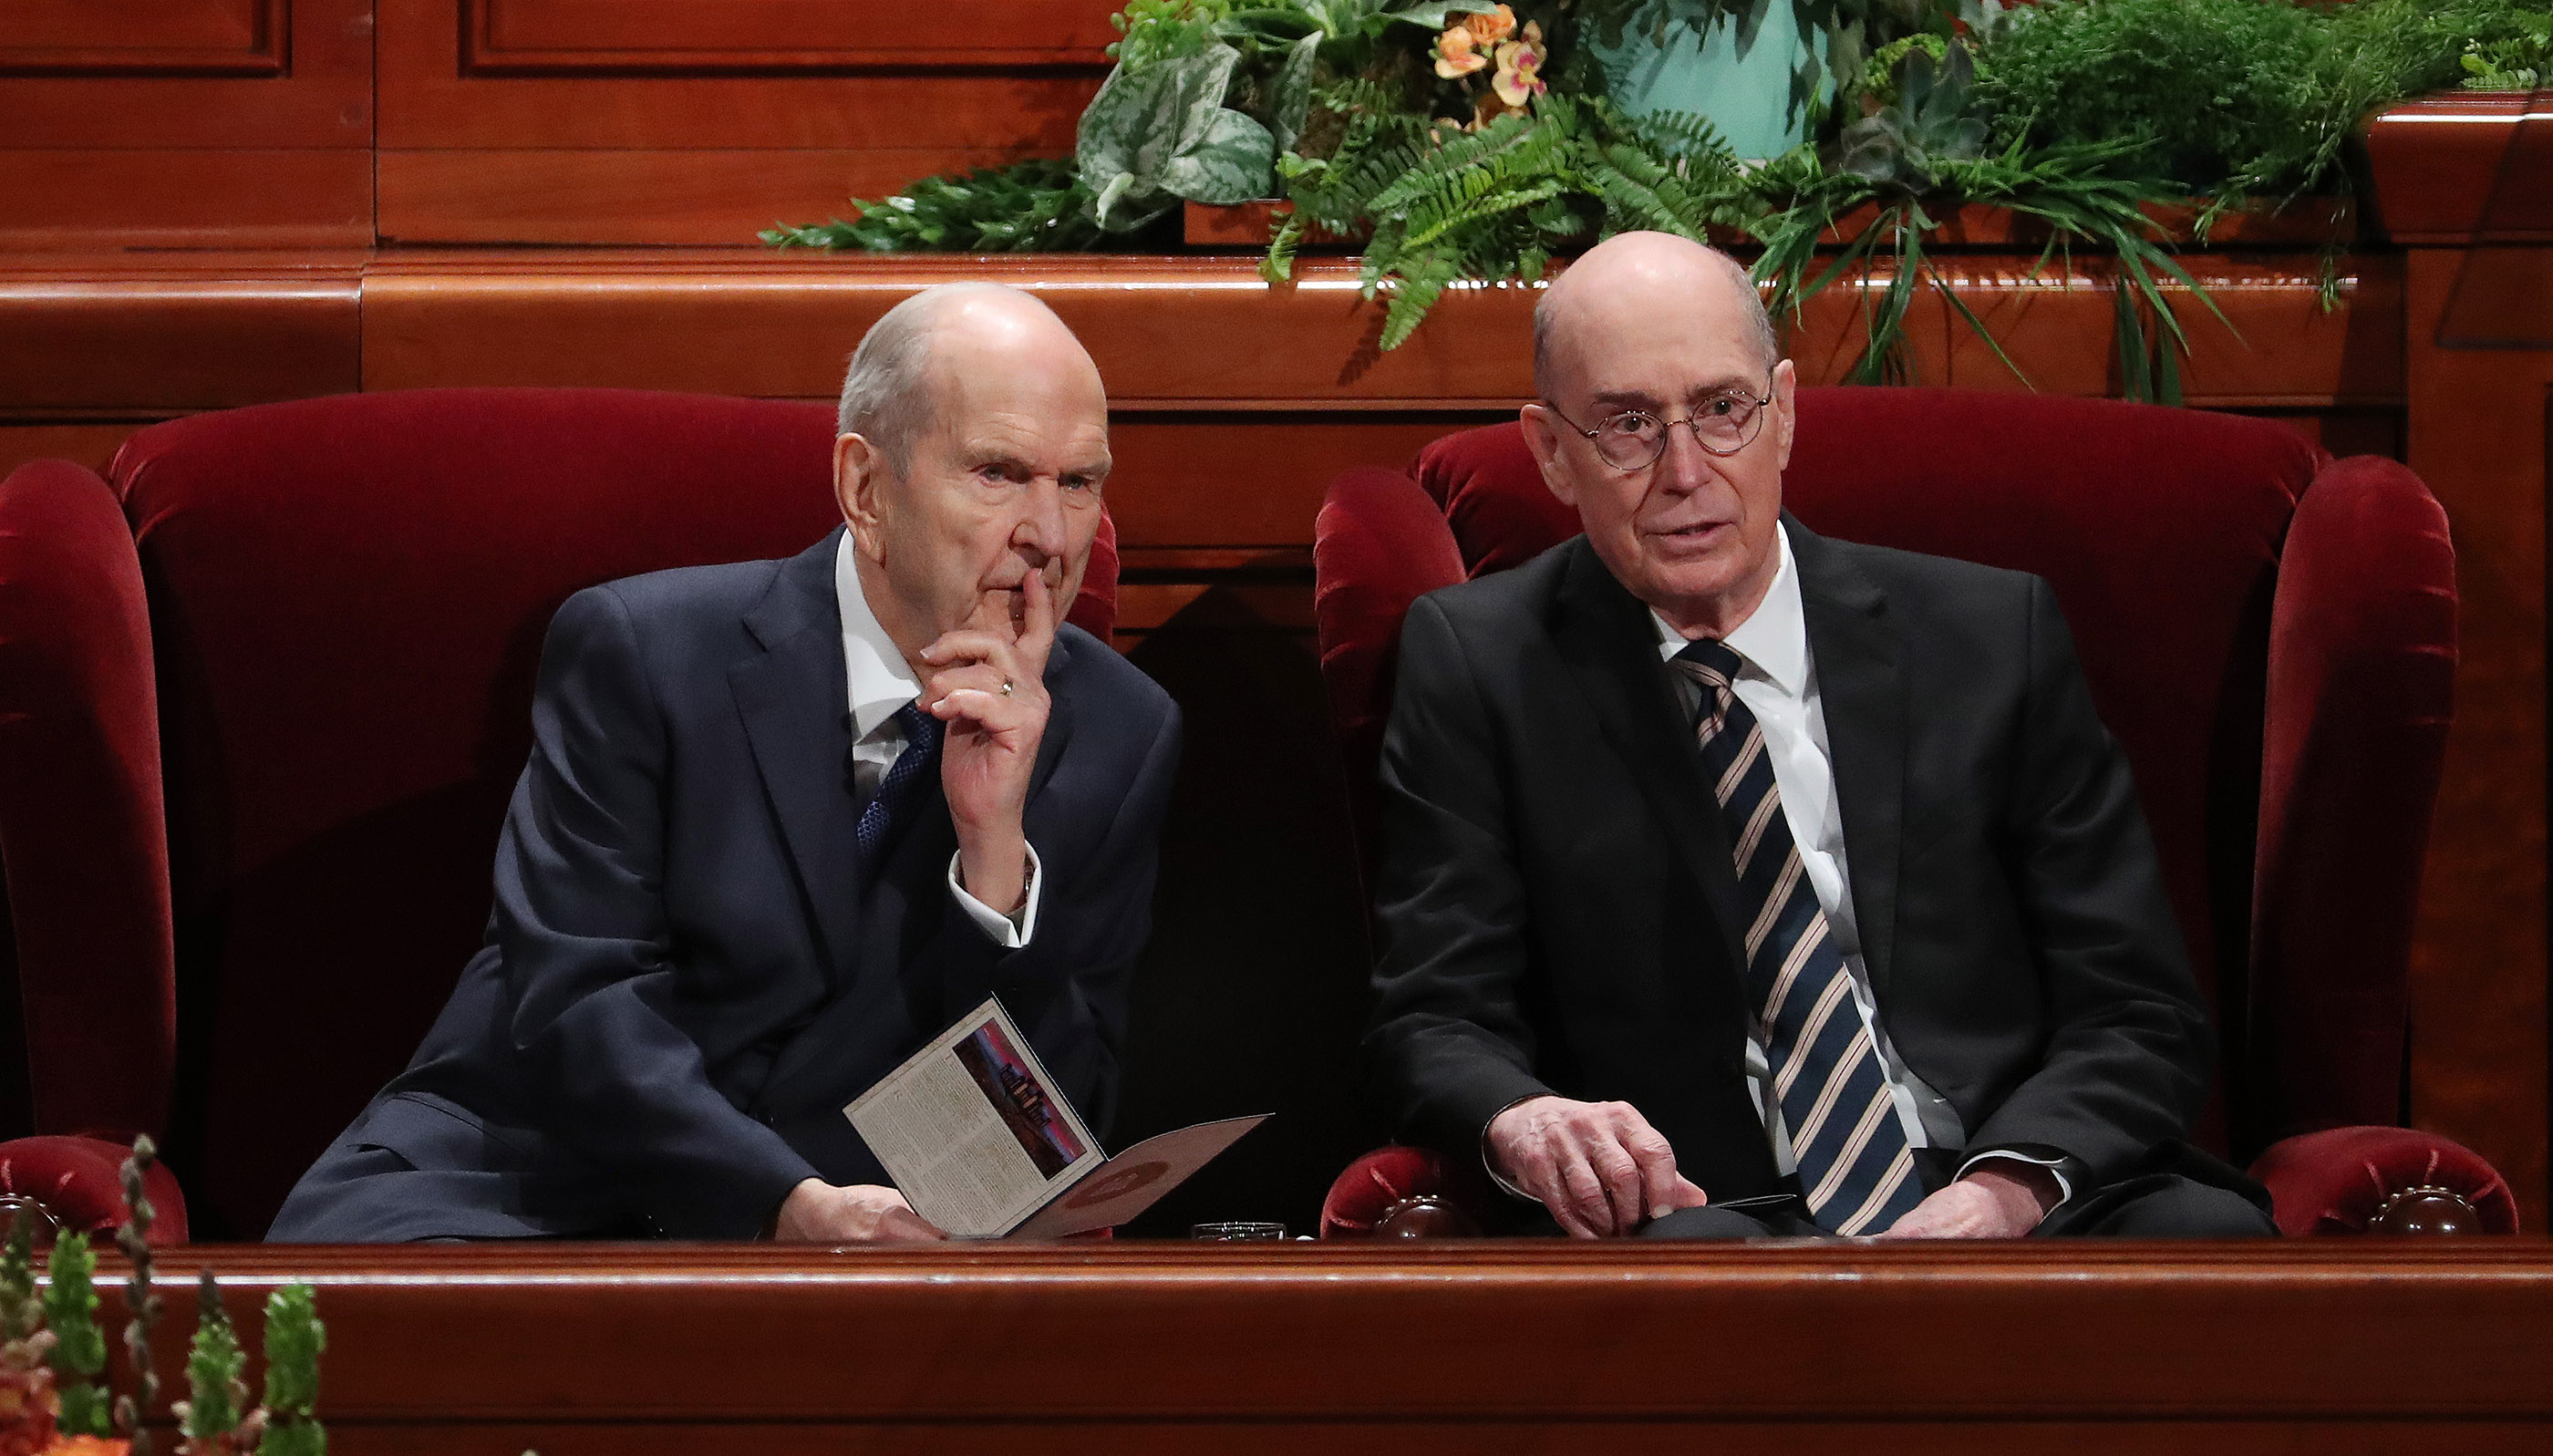 President Russell M. Nelson, center, and President Henry B. Eyring talk prior to the 189th Annual General Conference of The Church of Jesus Christ of Latter-day Saints in Salt Lake City on Sunday, April 7, 2019.